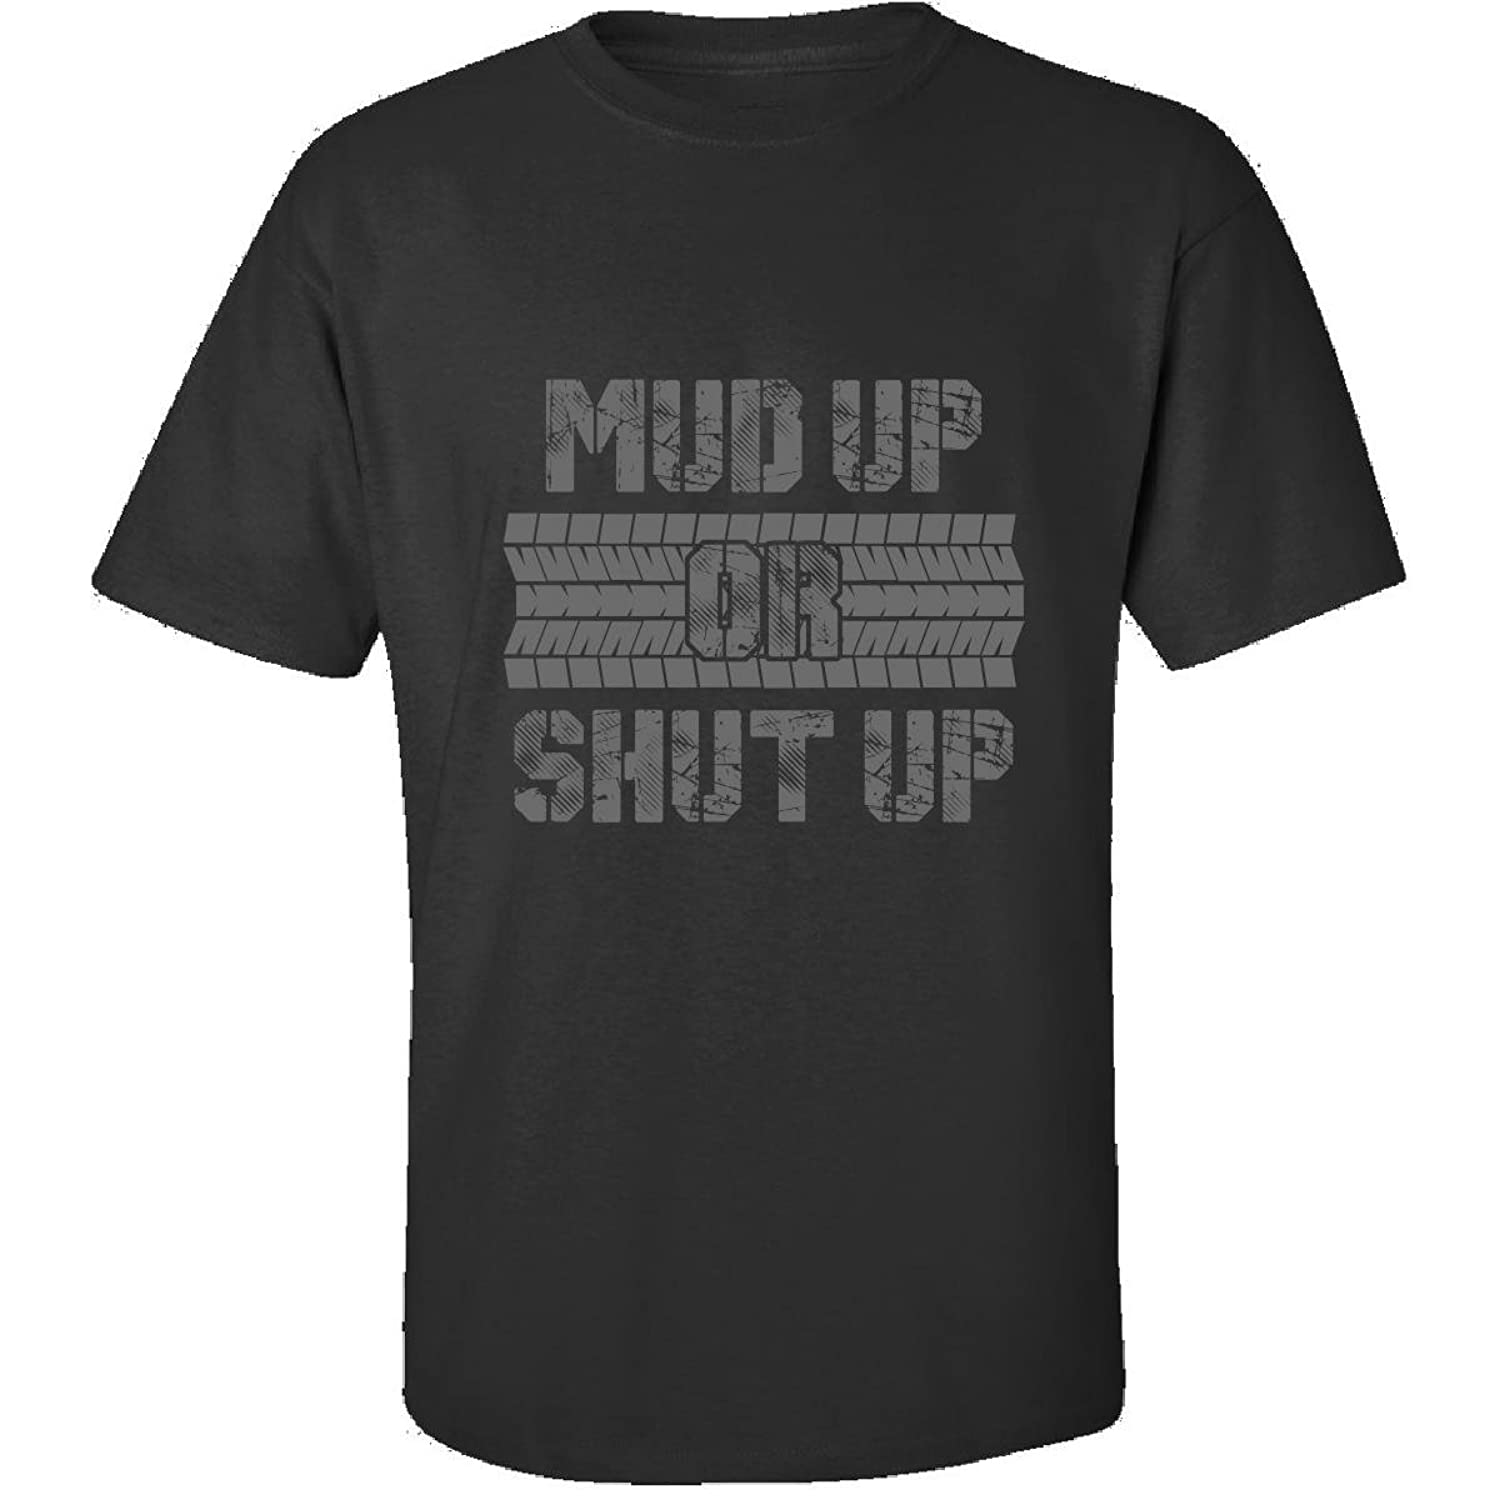 In Mud Up Or Shut Up Funny Gift For Any 4x4 Fan - Adult Shirt